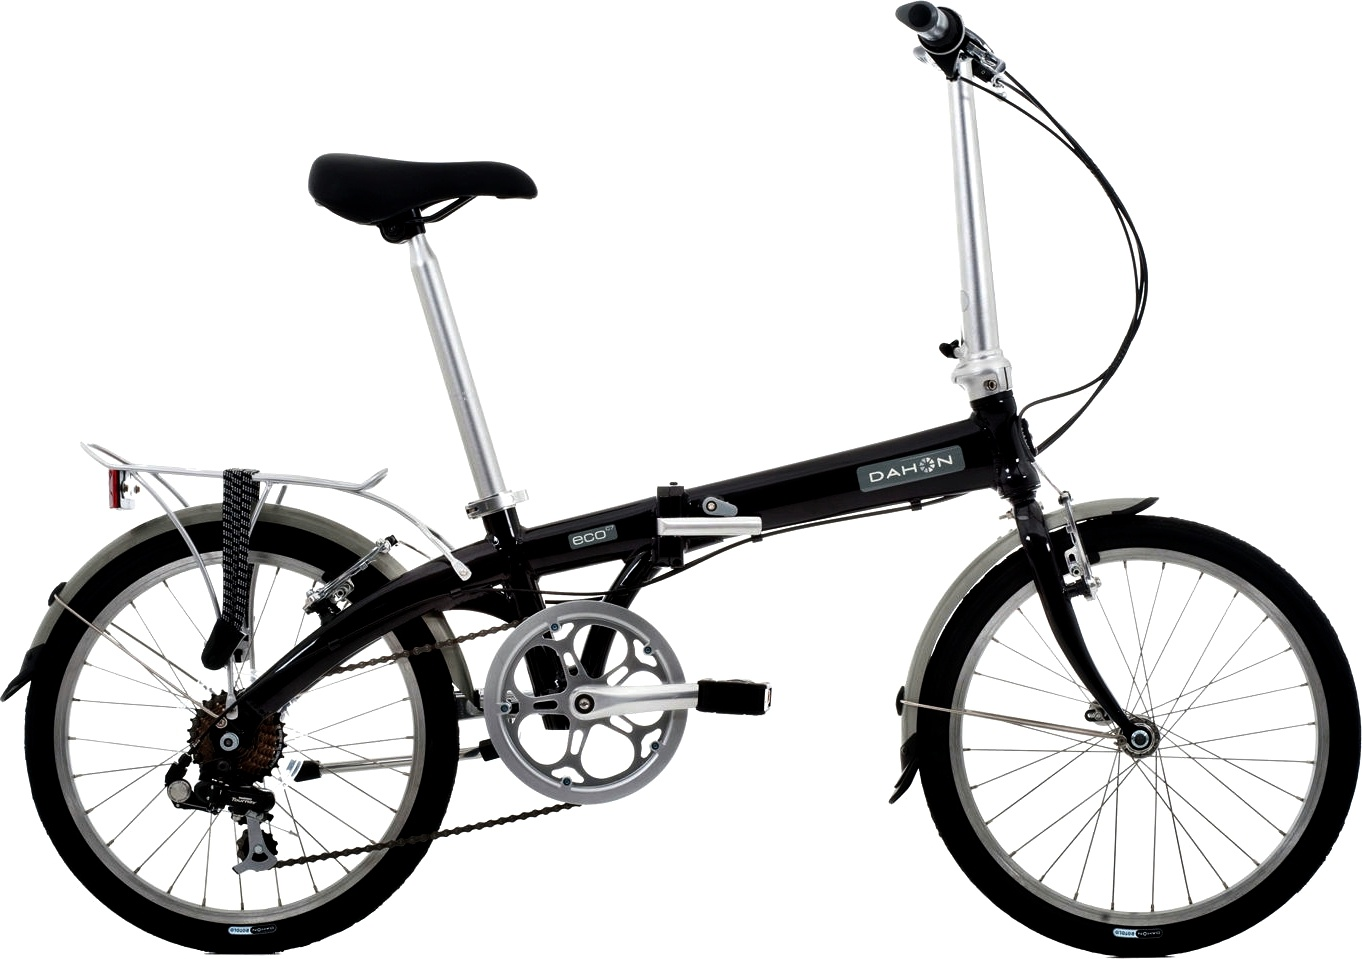 Kolo Dahon ECO C7 Black model 2012